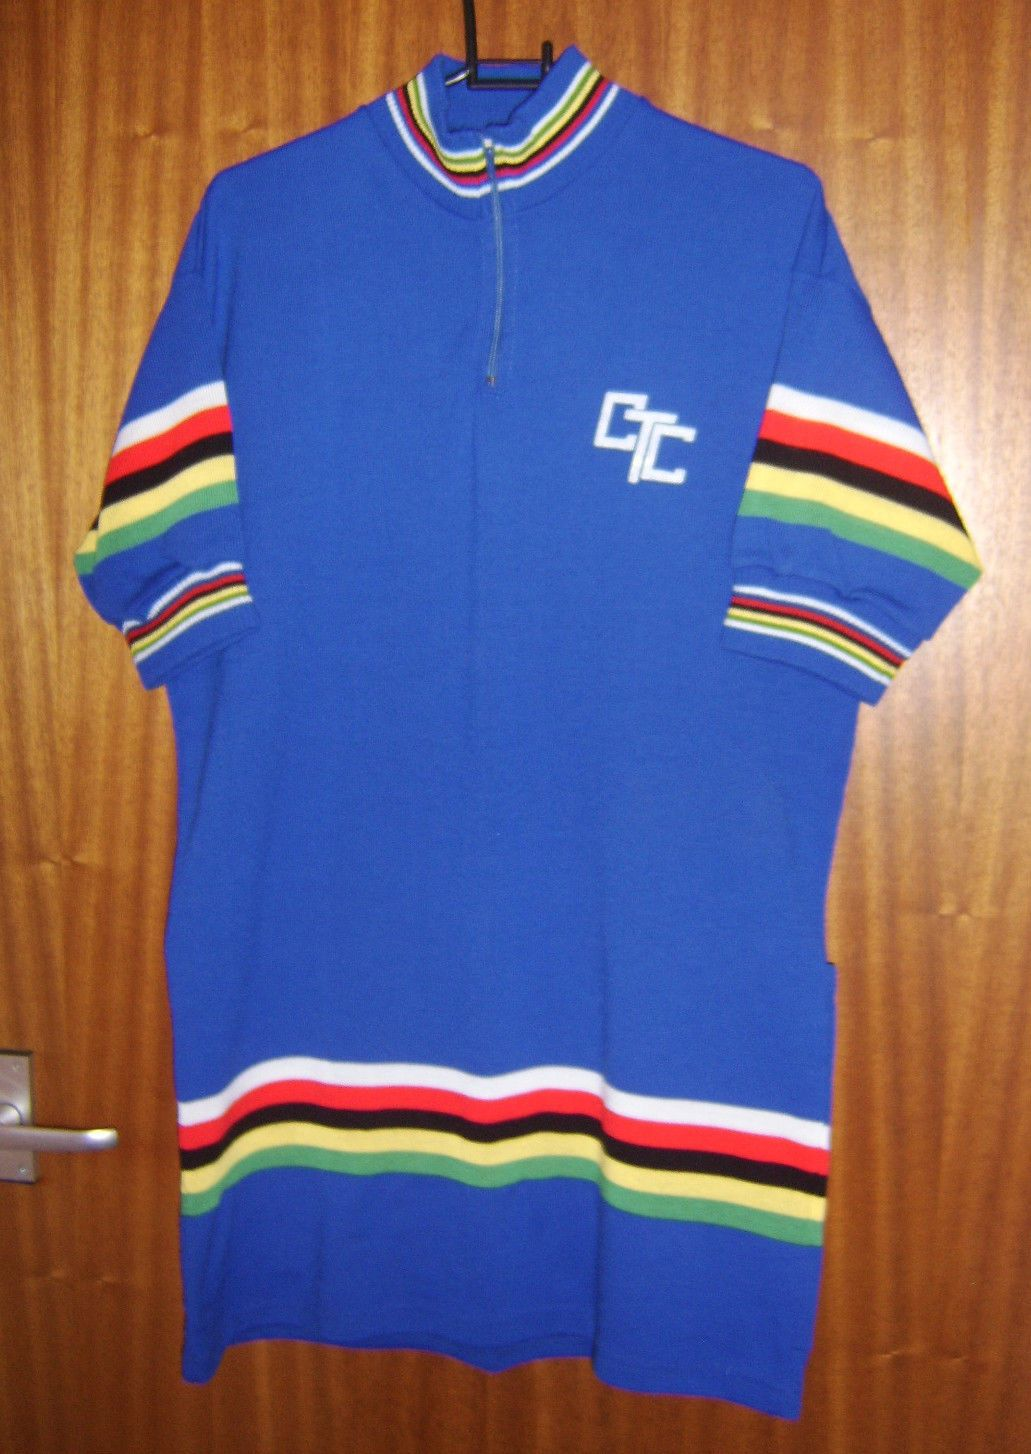 CTC Cycling Jersey Royal Blue With Multicolour Stripes Size 9 M Vintage  1e9beec5c